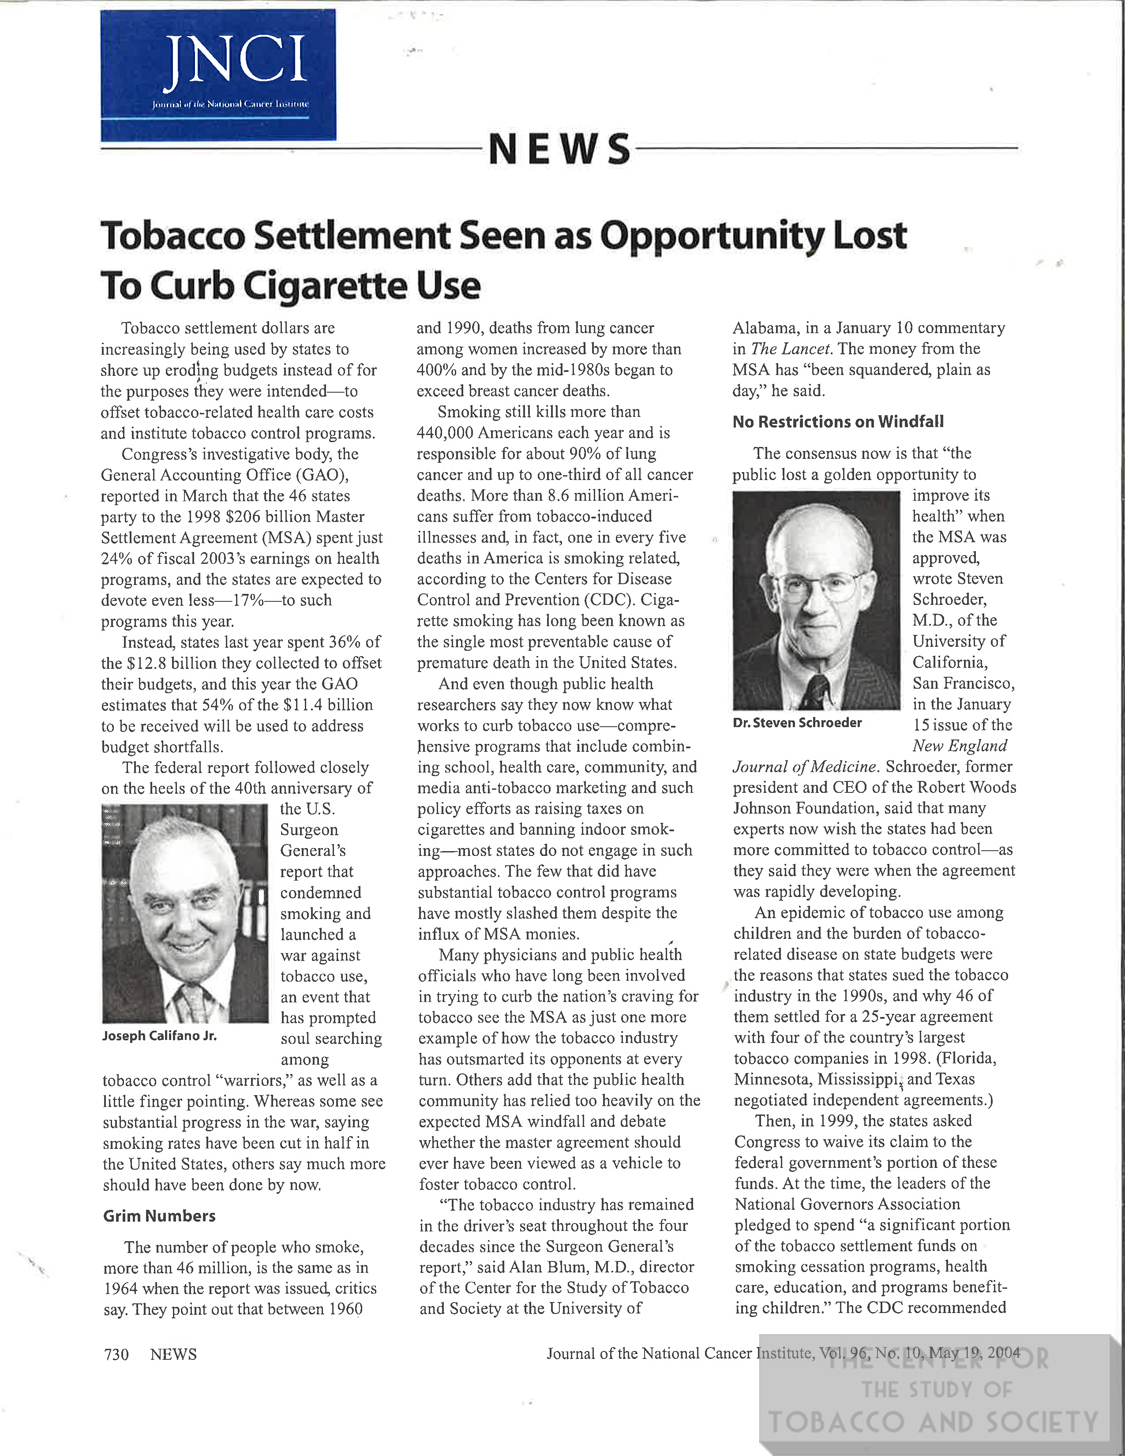 2004 JNCI Tobacco Settlement Seen as Opportunity Lost